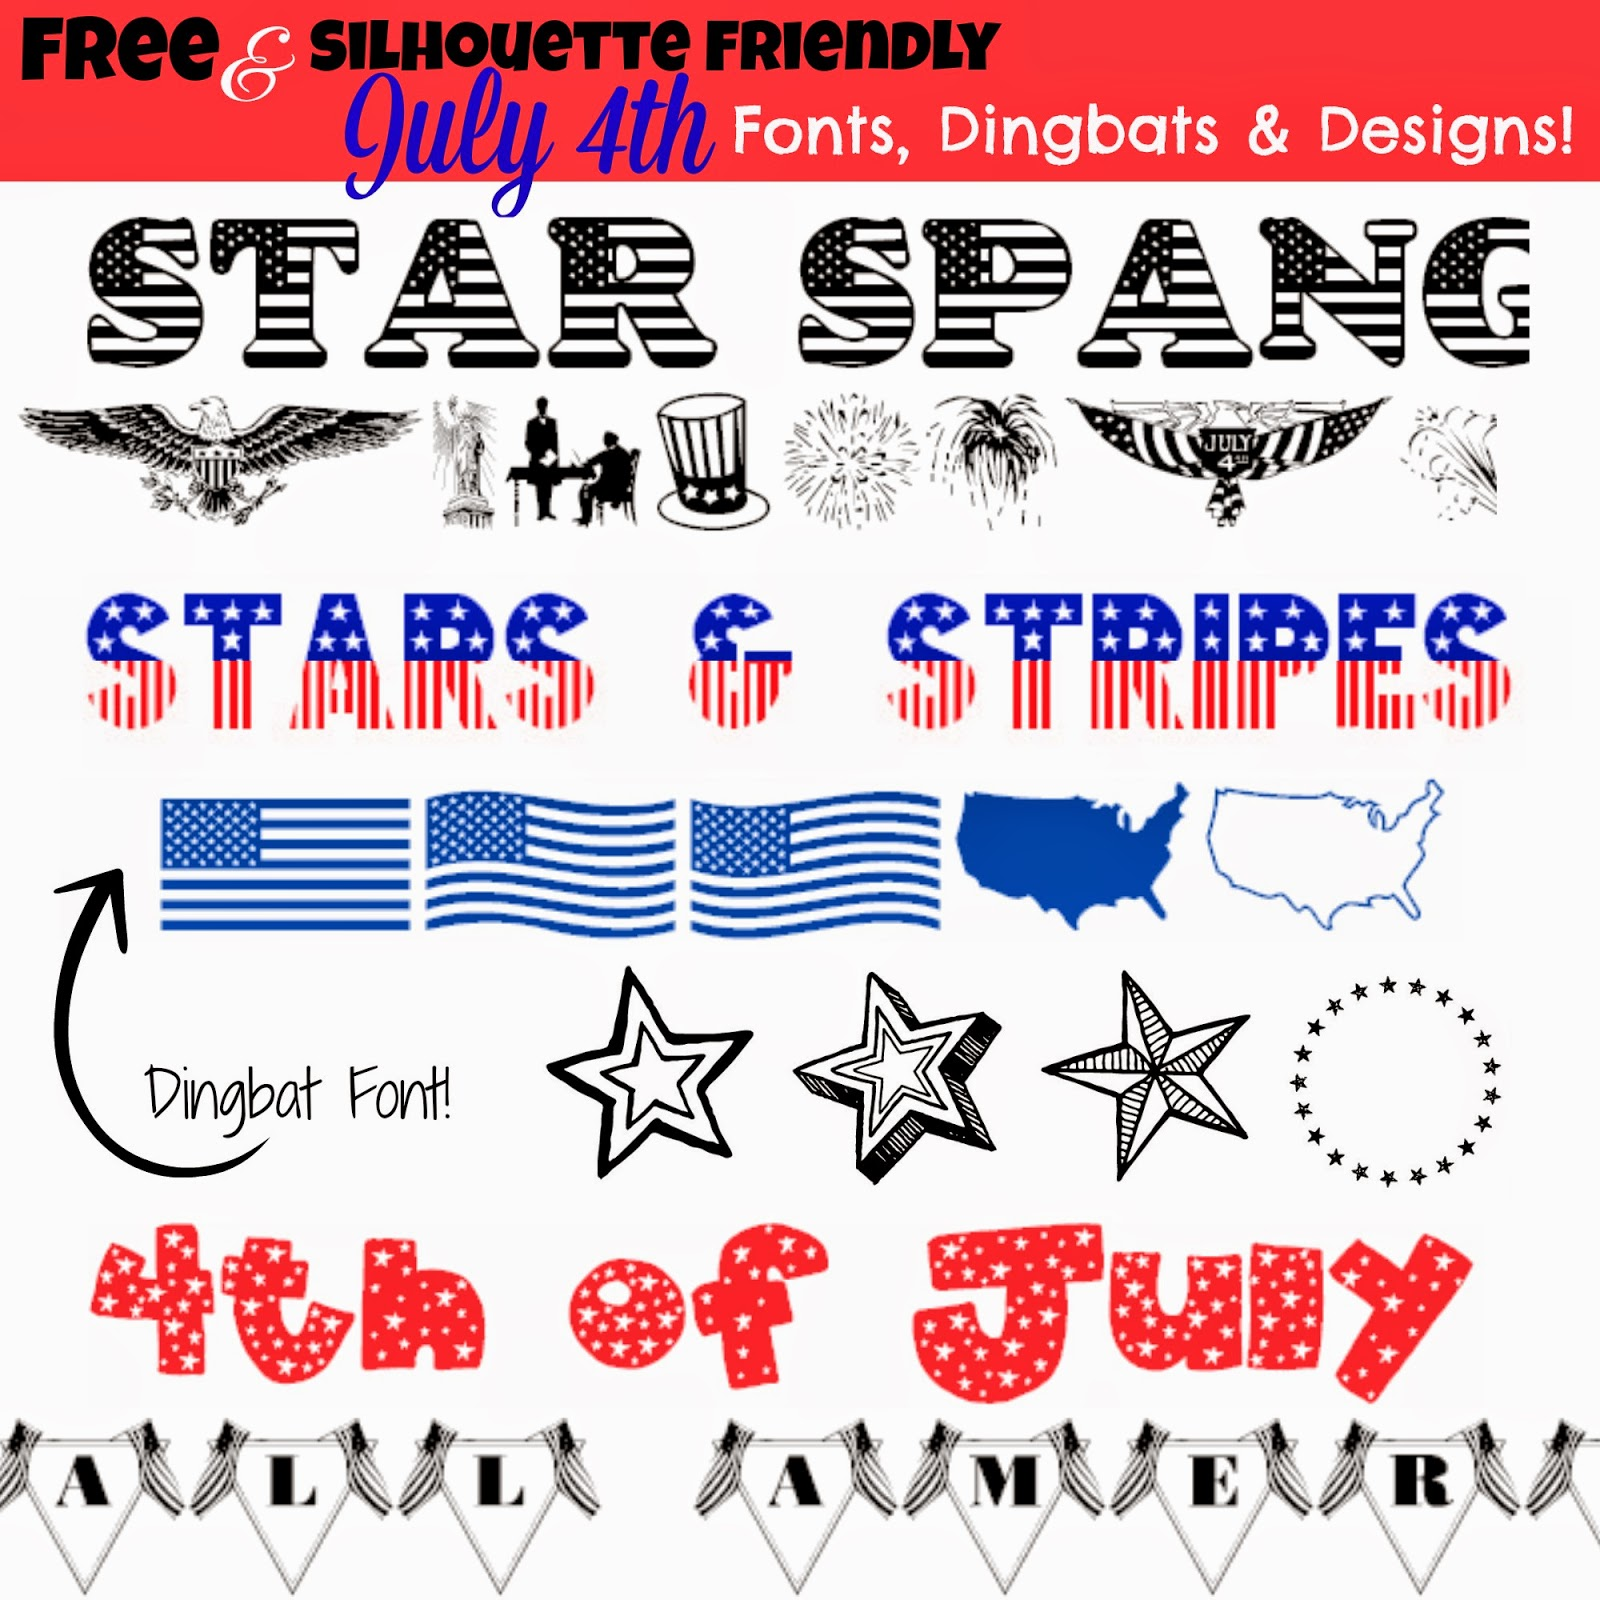 8 FREE (Silhouette Friendly) July 4th Fonts, Dingbats